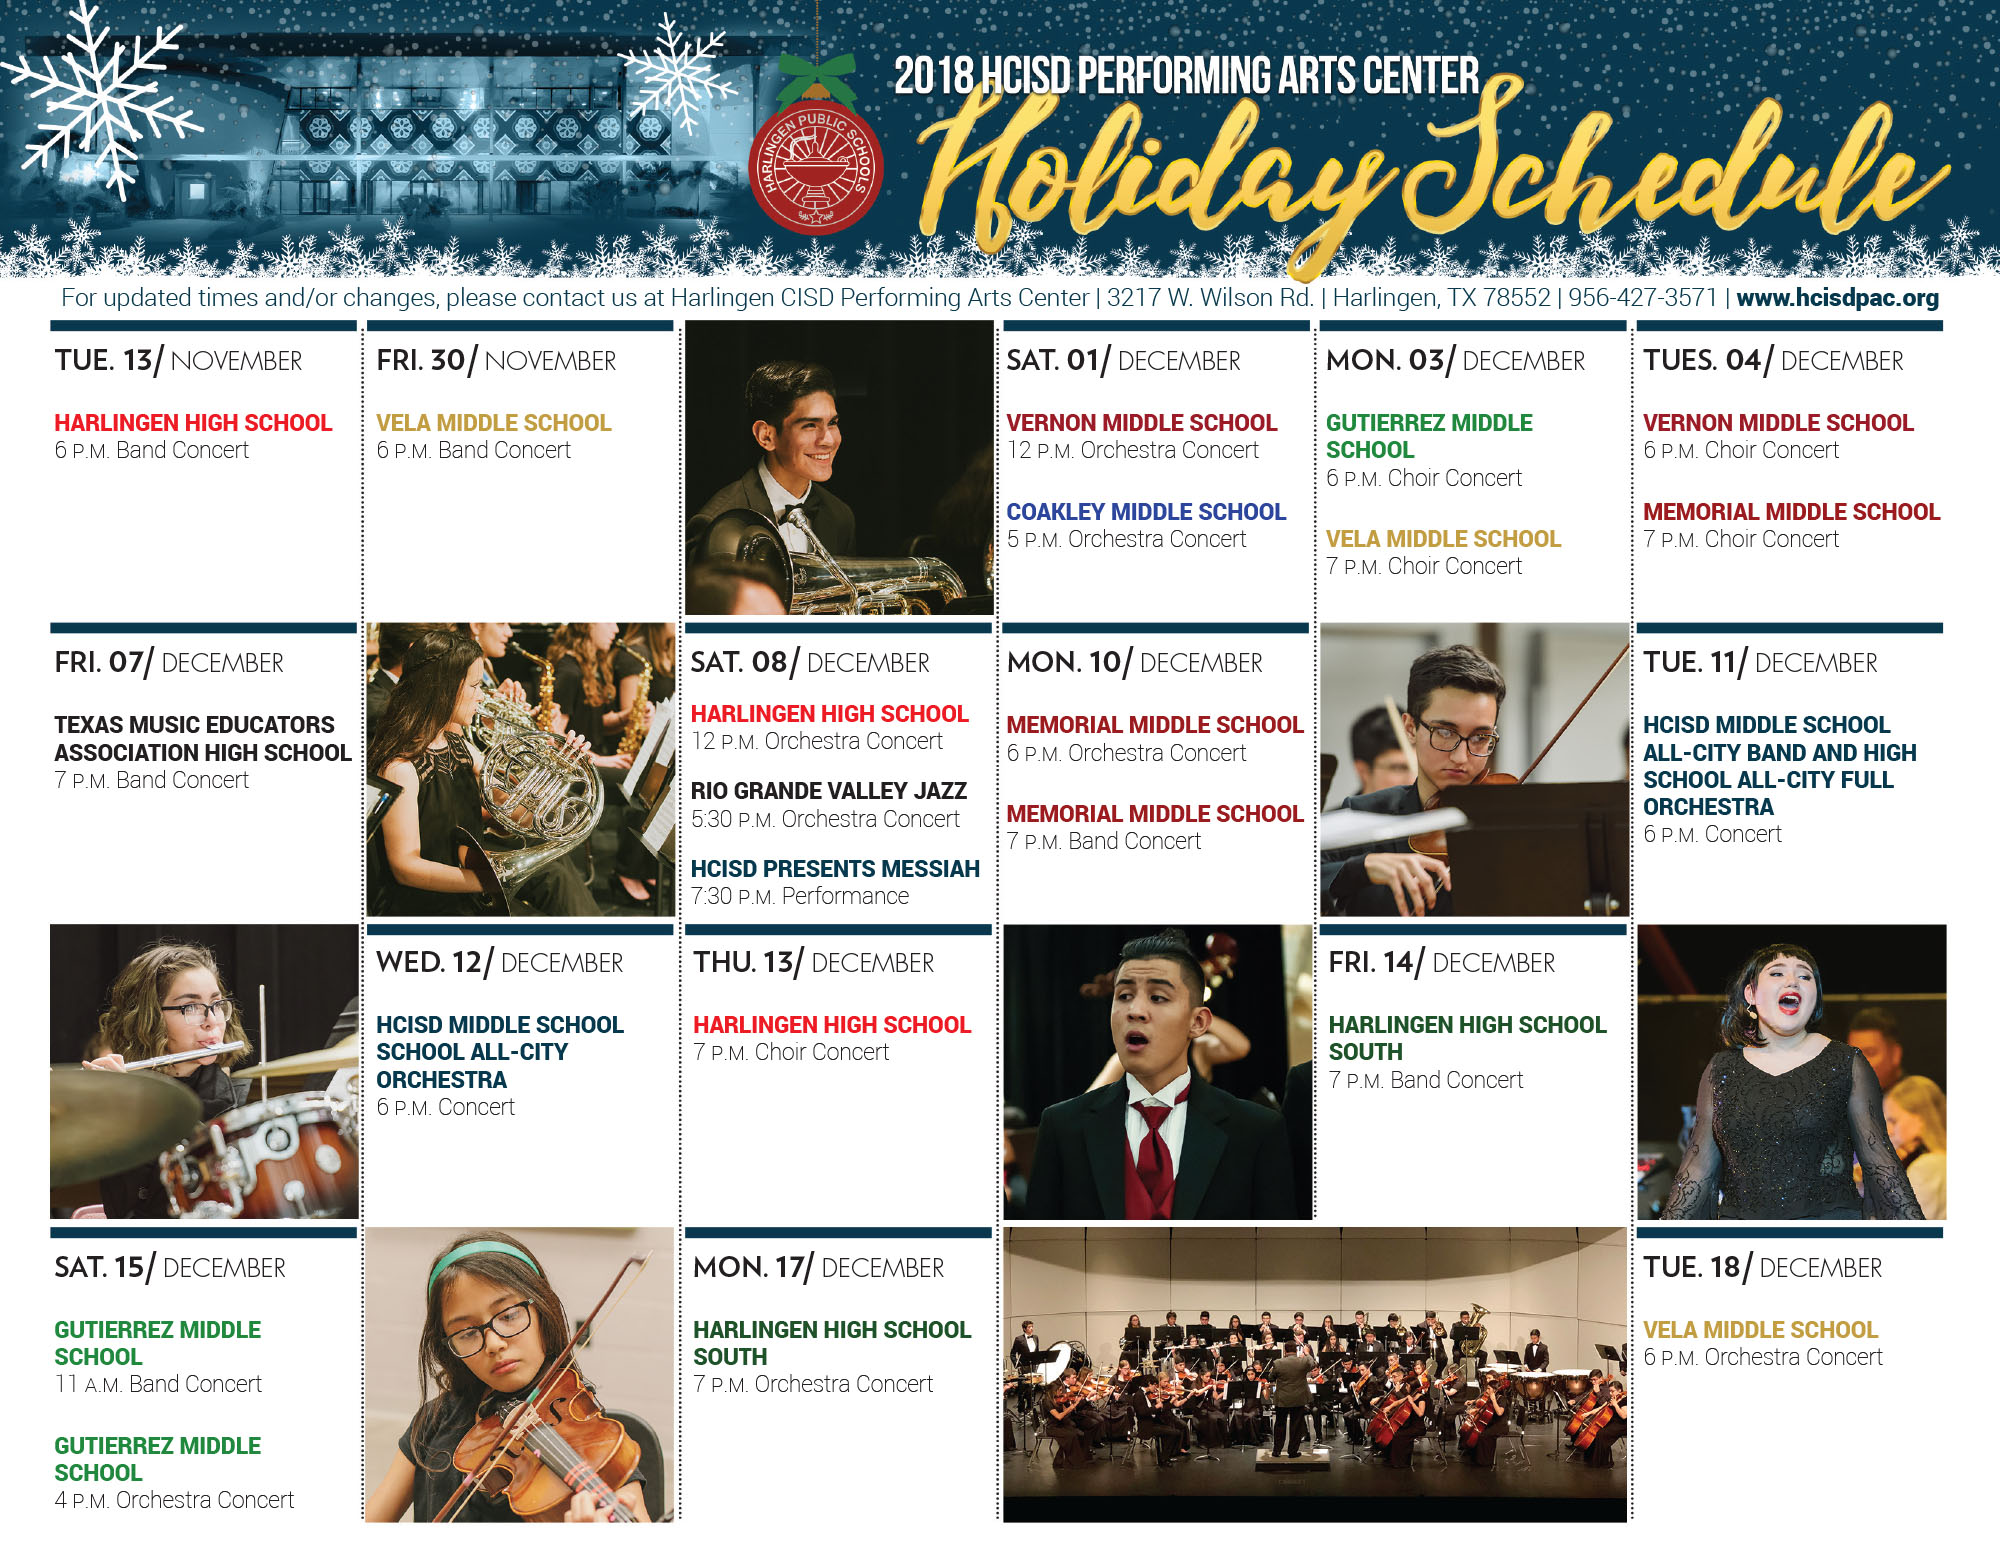 2018 Holiday Concert Schedule